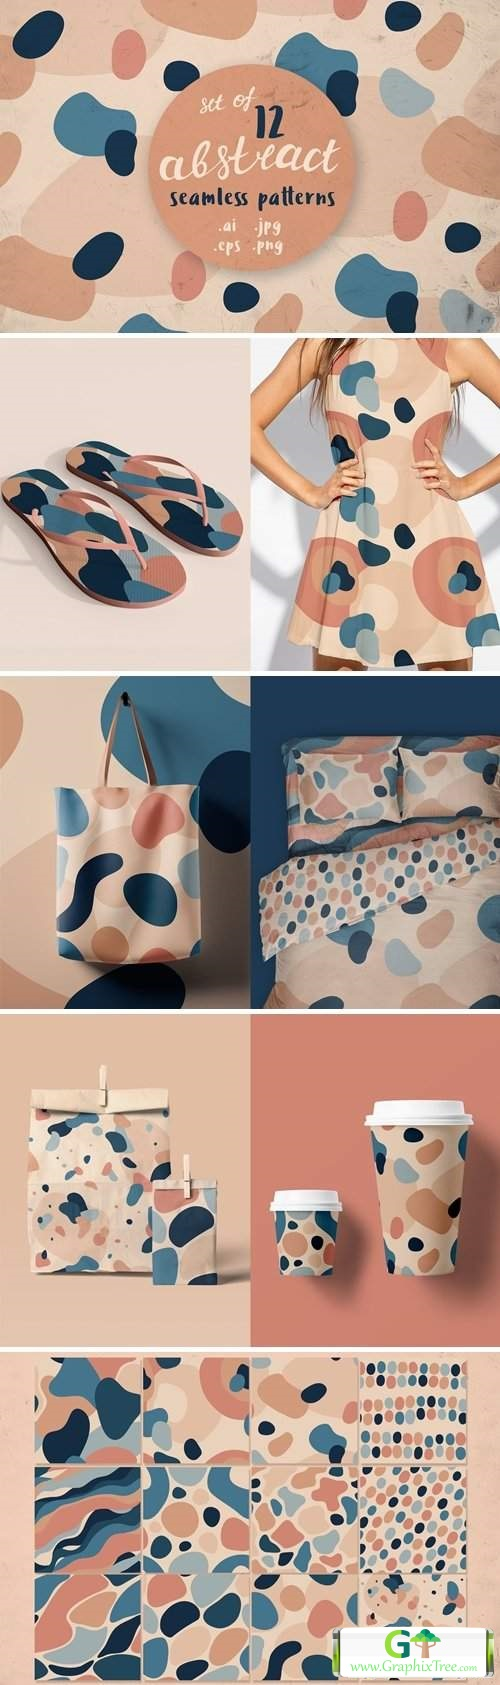 12 abstract seamless patterns [Vector] [Textures & Patterns]